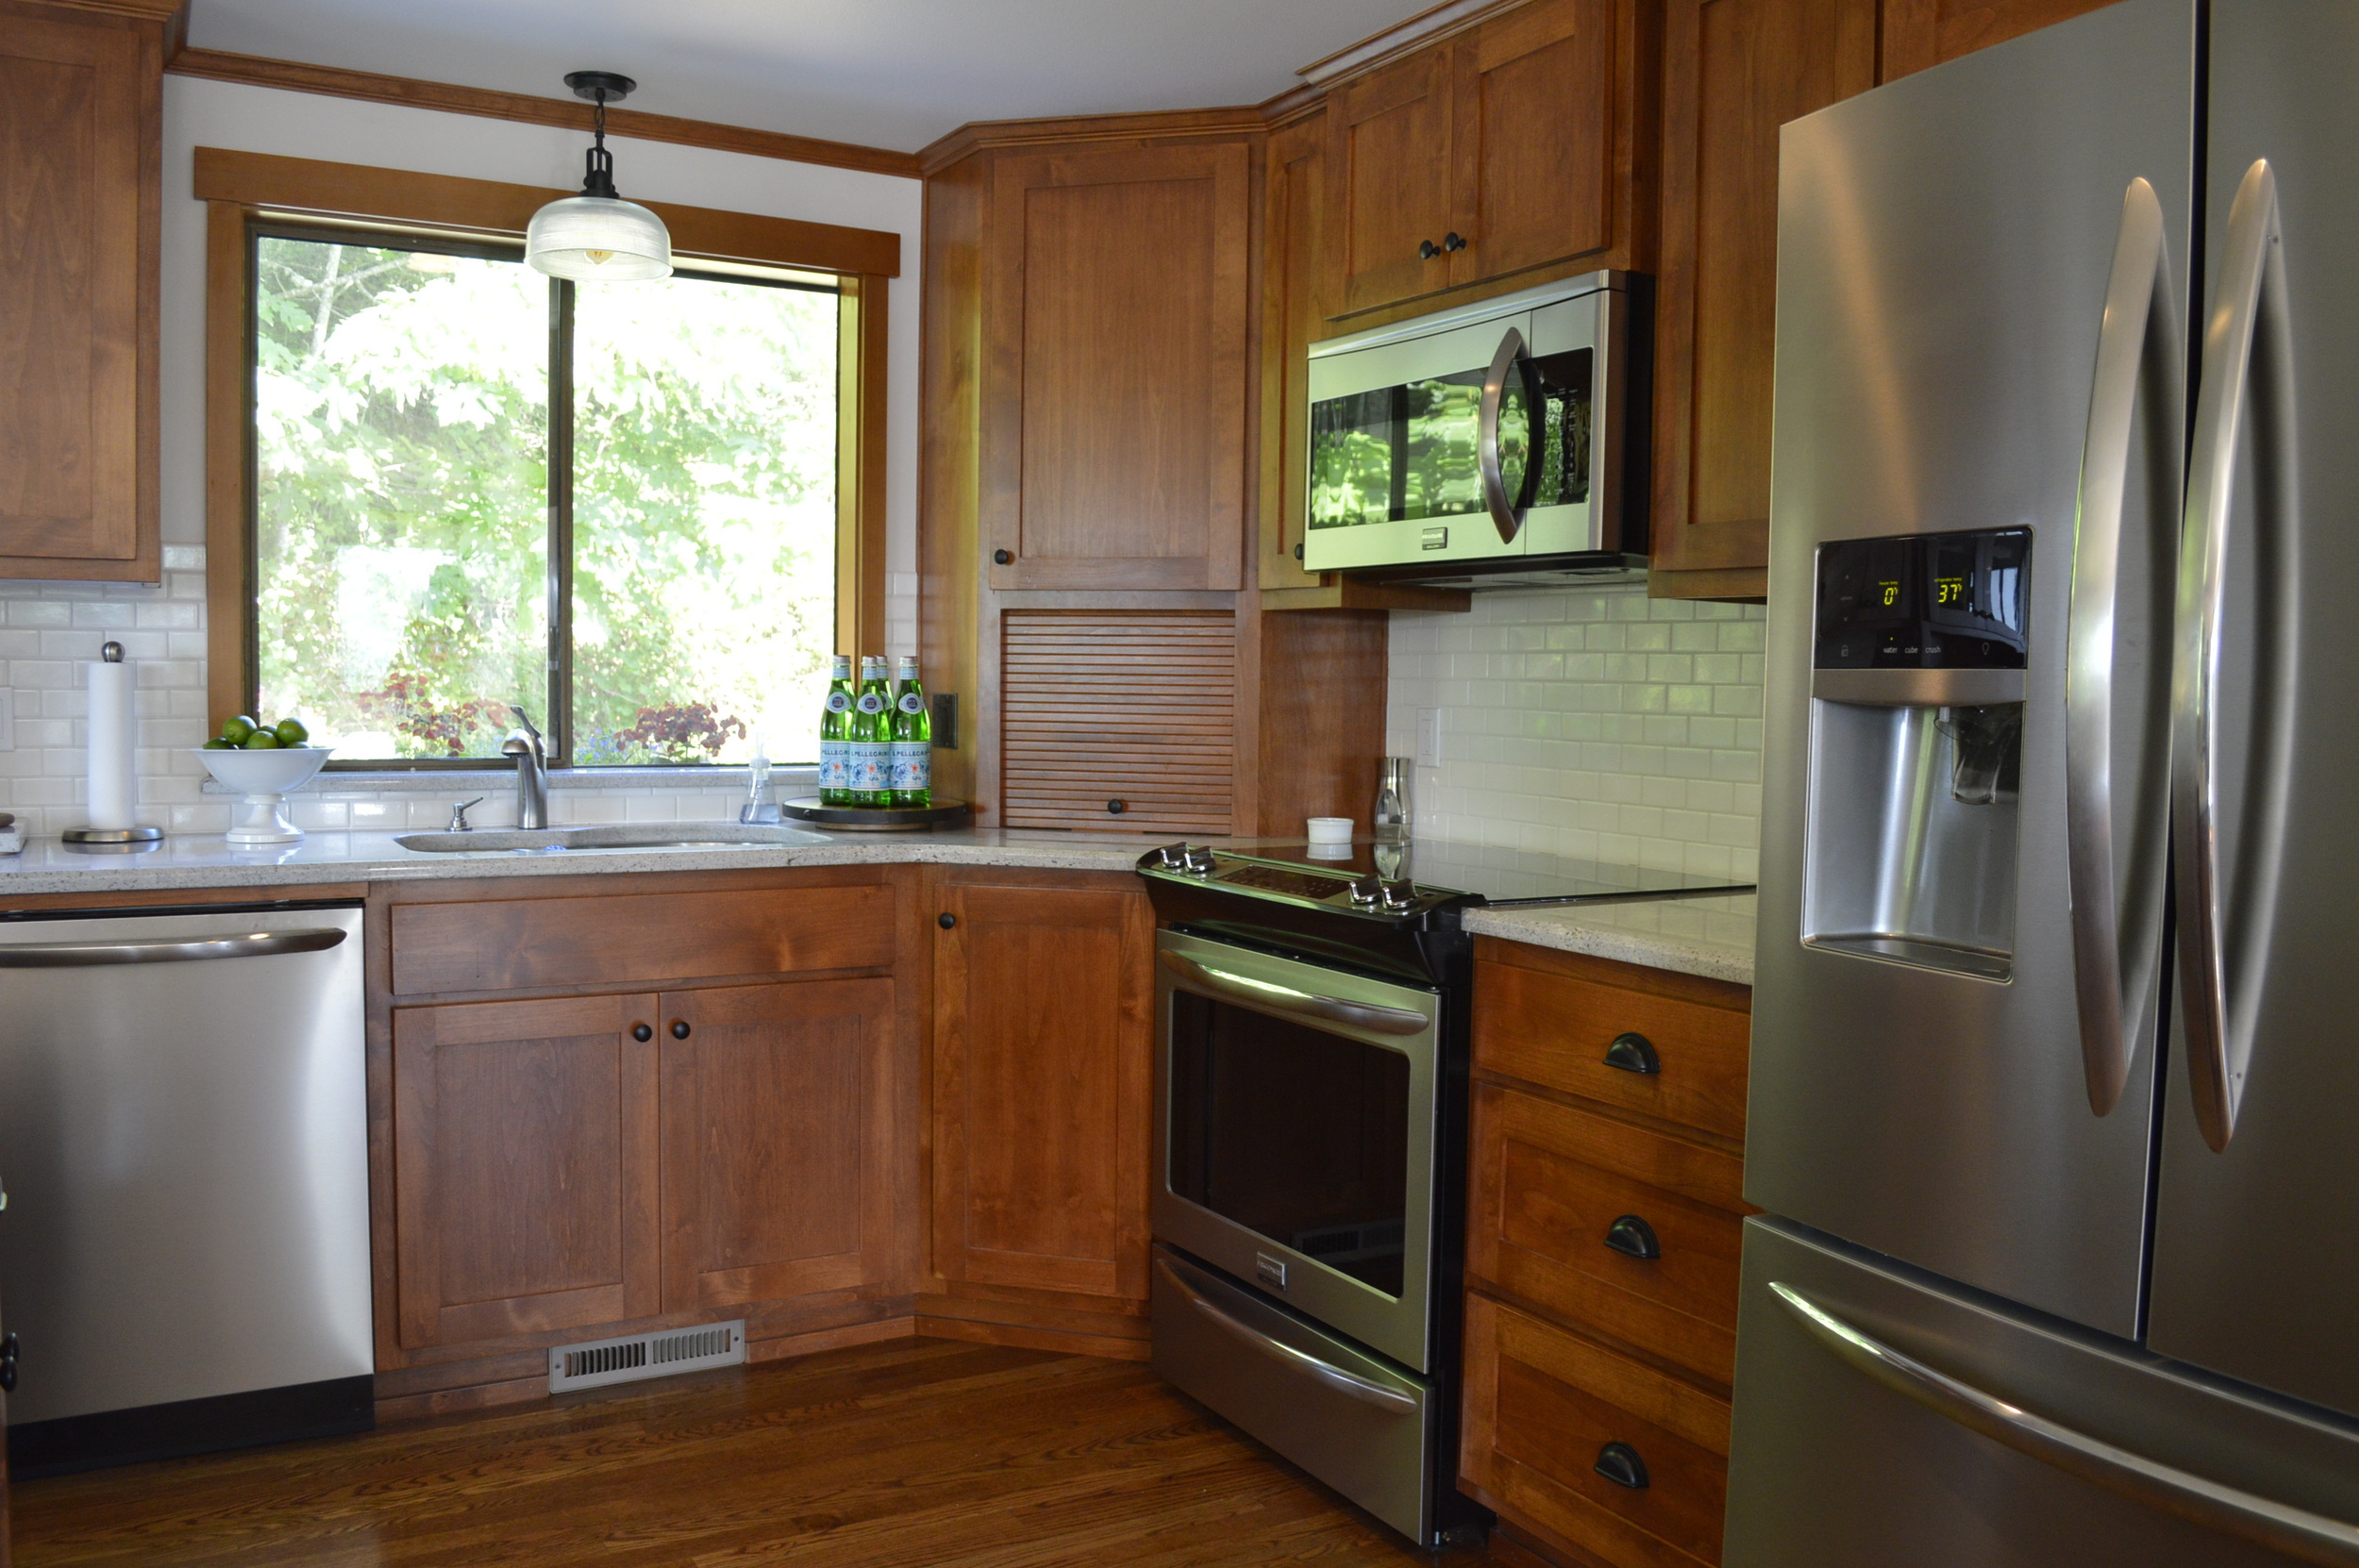 Smudge proof stainless appliances with a corner small appliance garage, new light fixture...